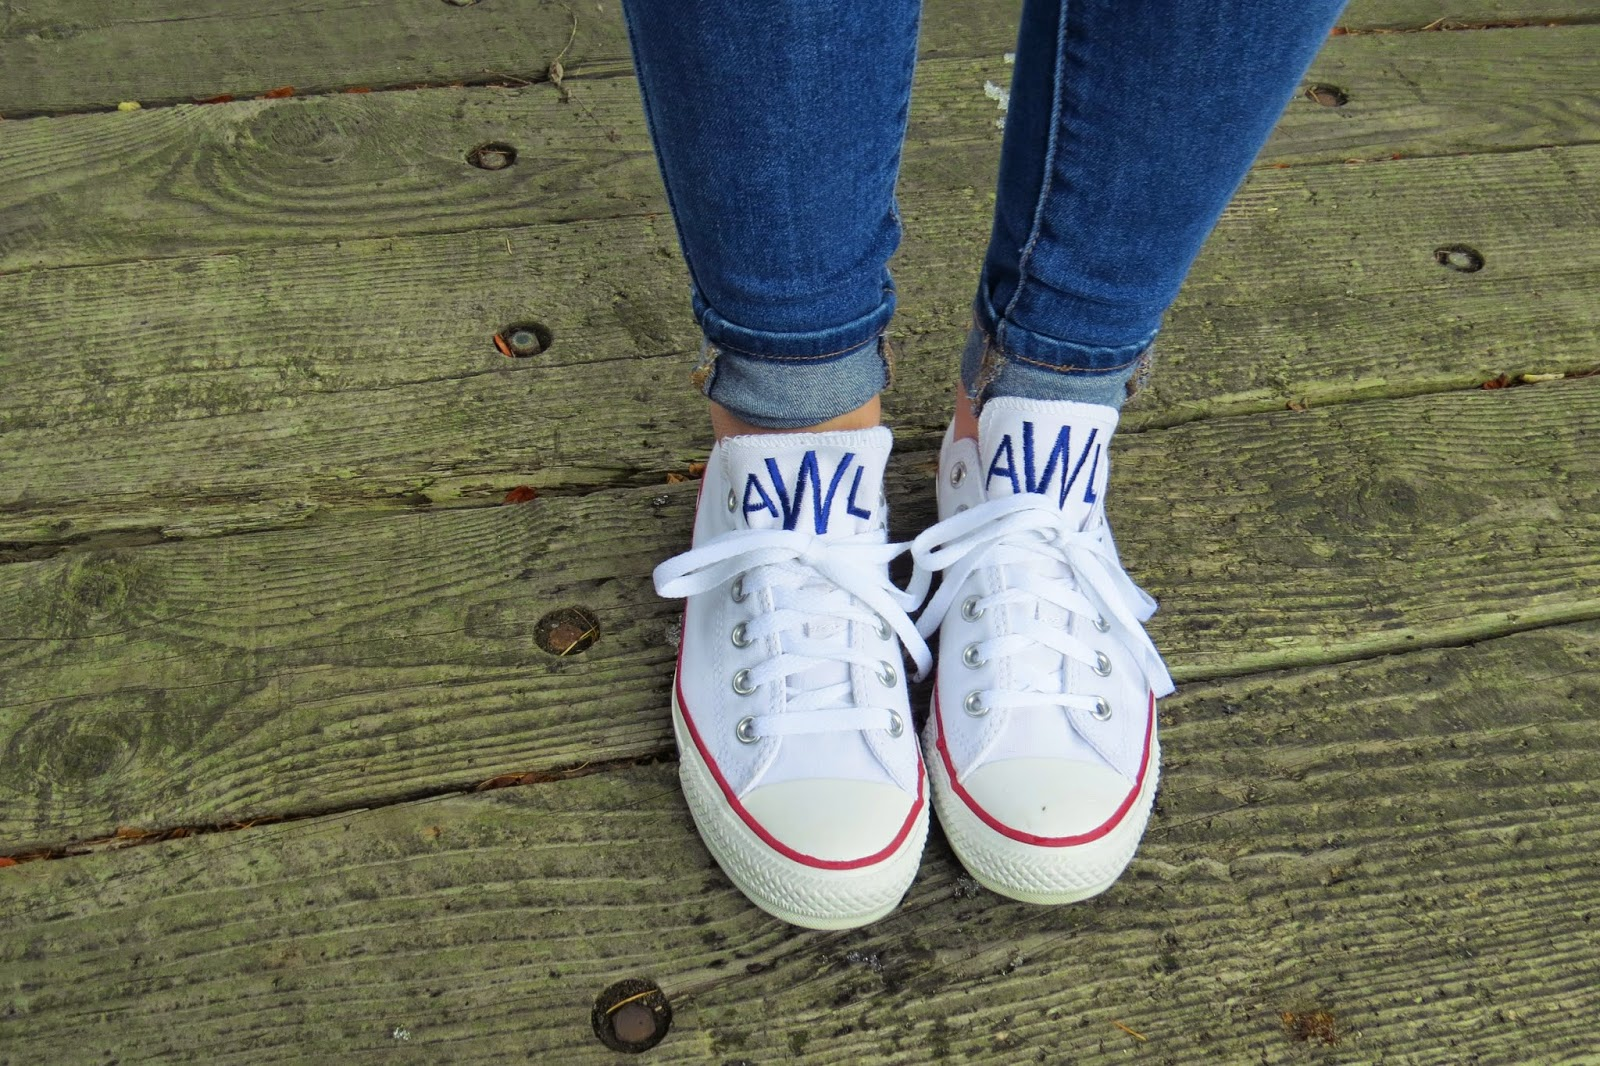 monogrammed converse shoes etsy recognized brands 27a31 c535e ... d6abb6bf3